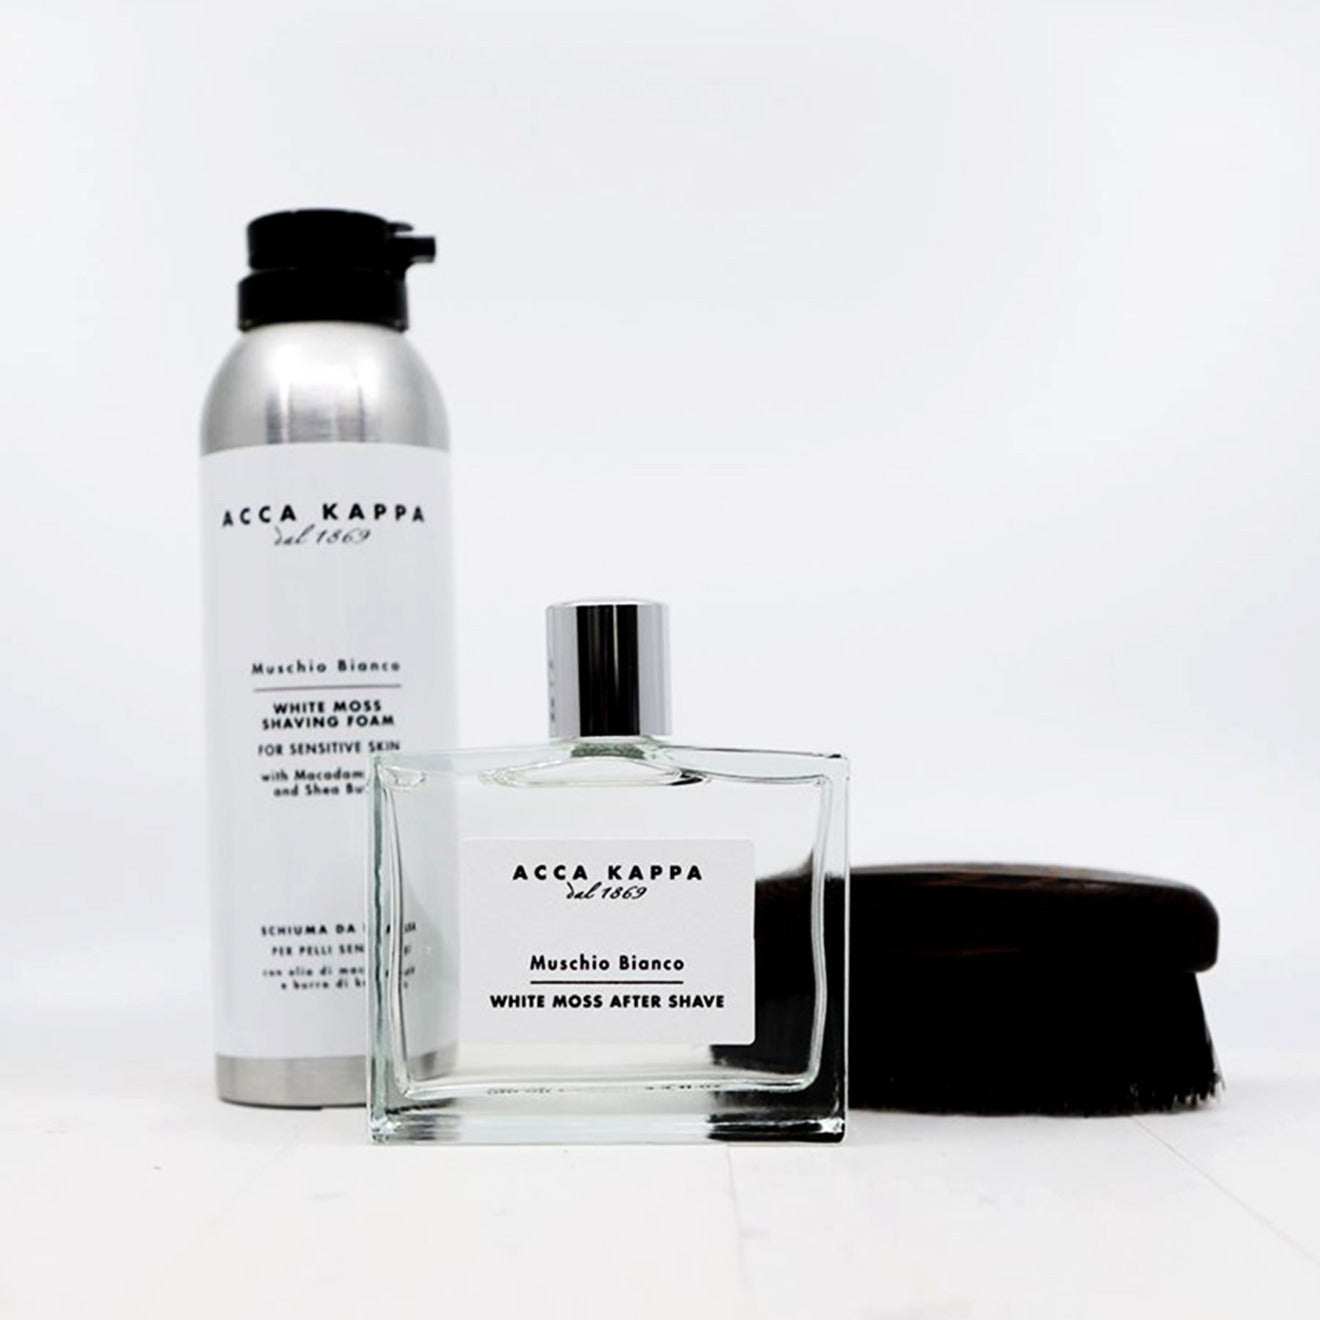 Acca Kappa White Moss Gift Set - After Shave + Shave Foam Value $113